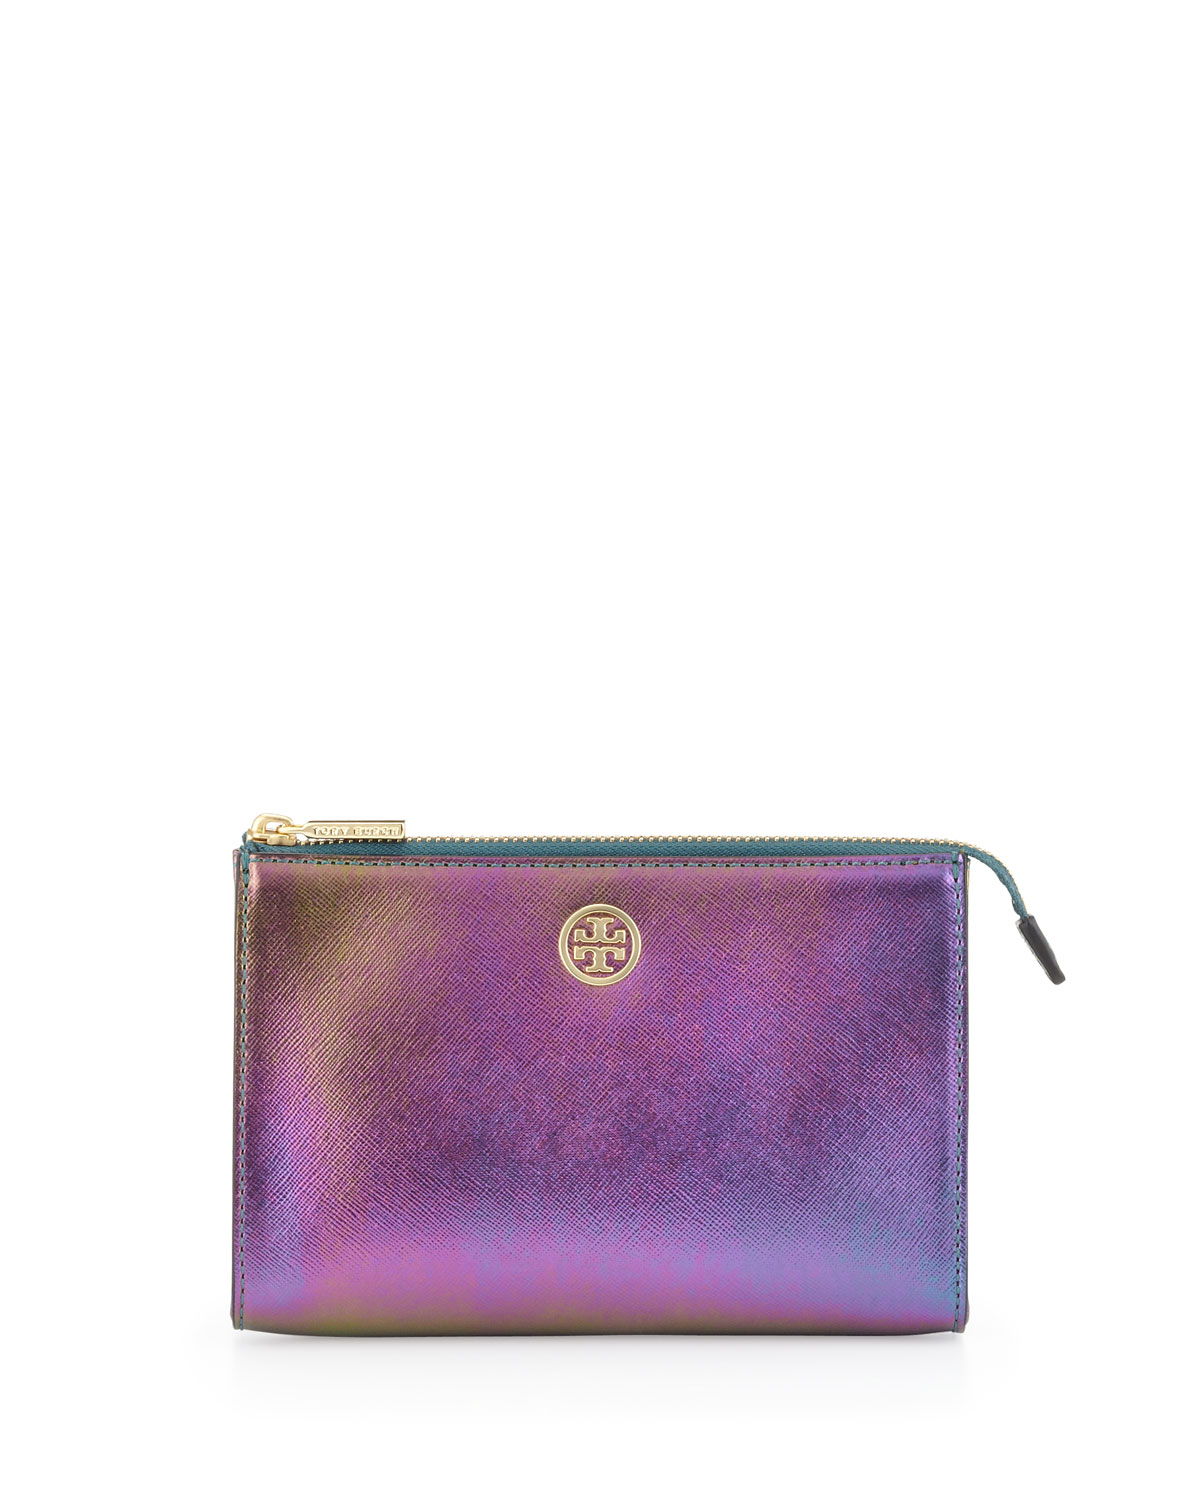 Tory Burch Robinson Hologram Cosmetic Case Purple